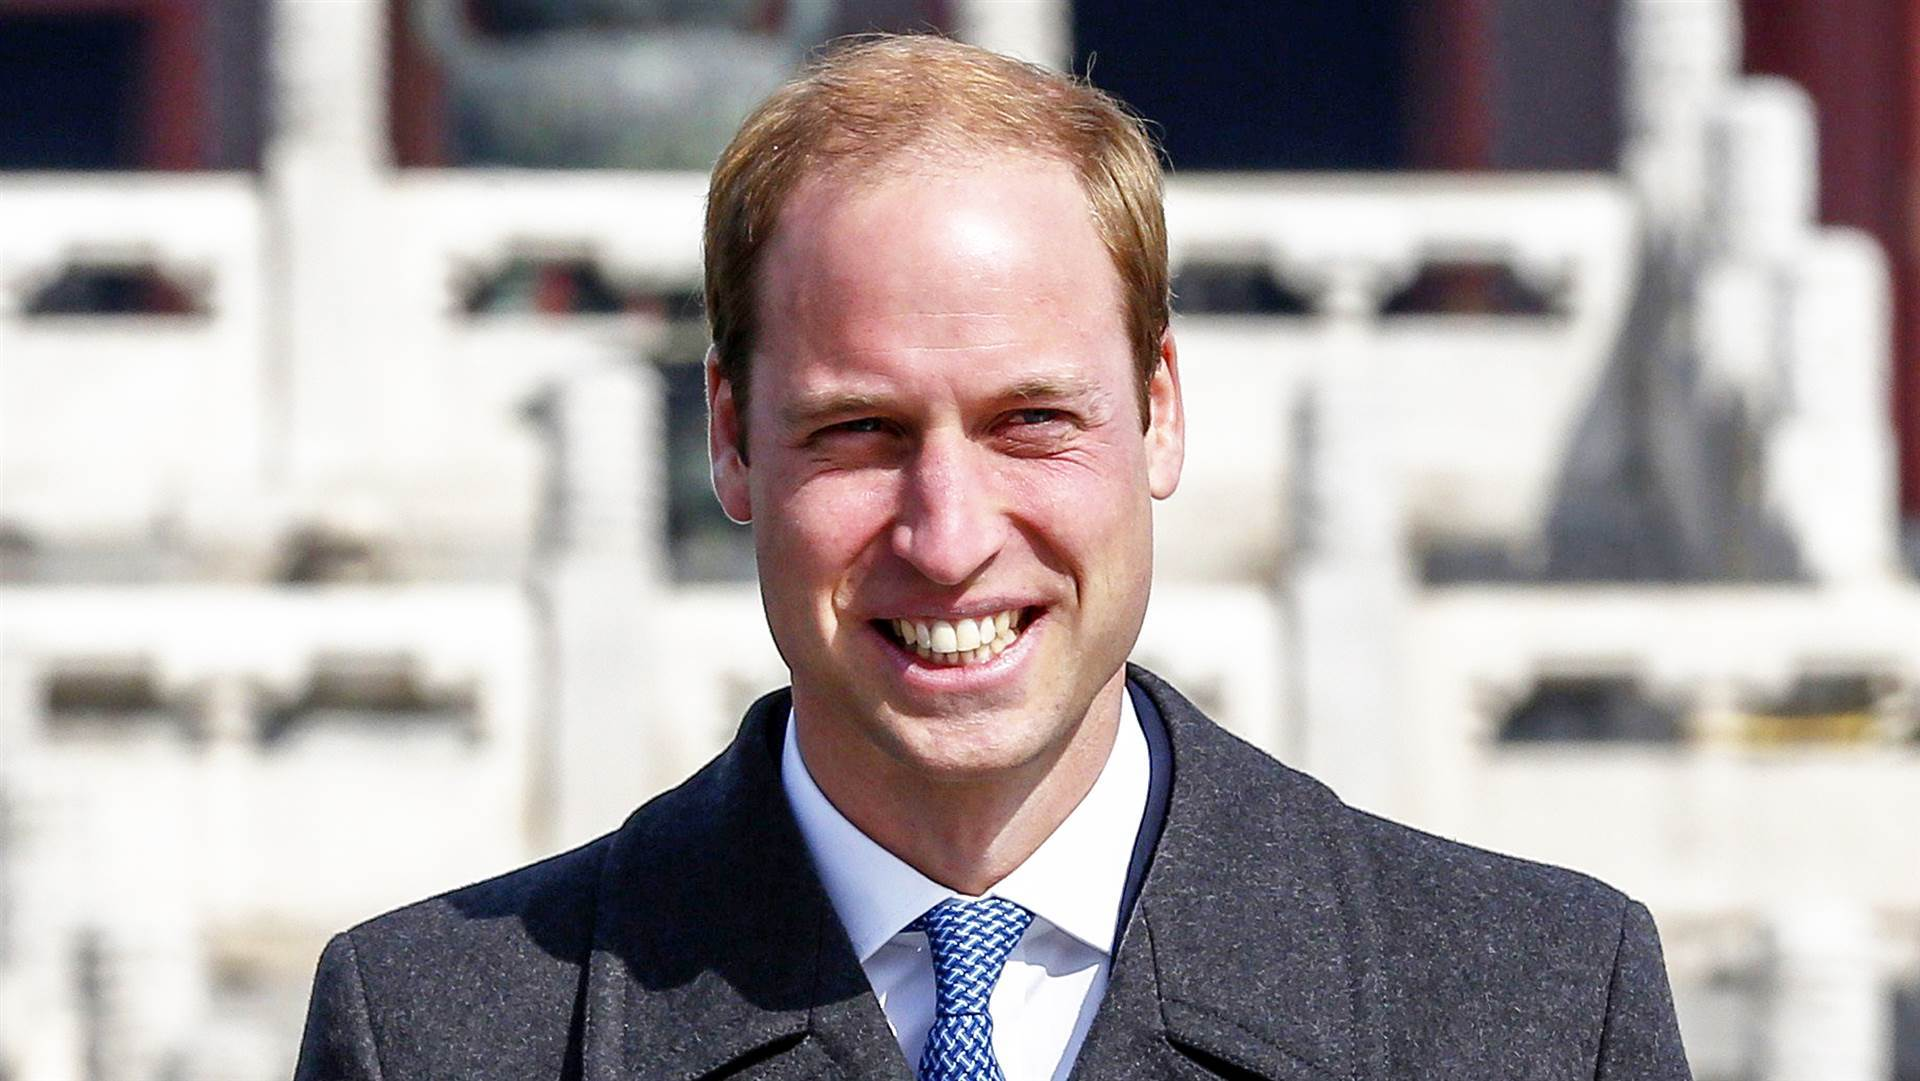 Prince William 4k